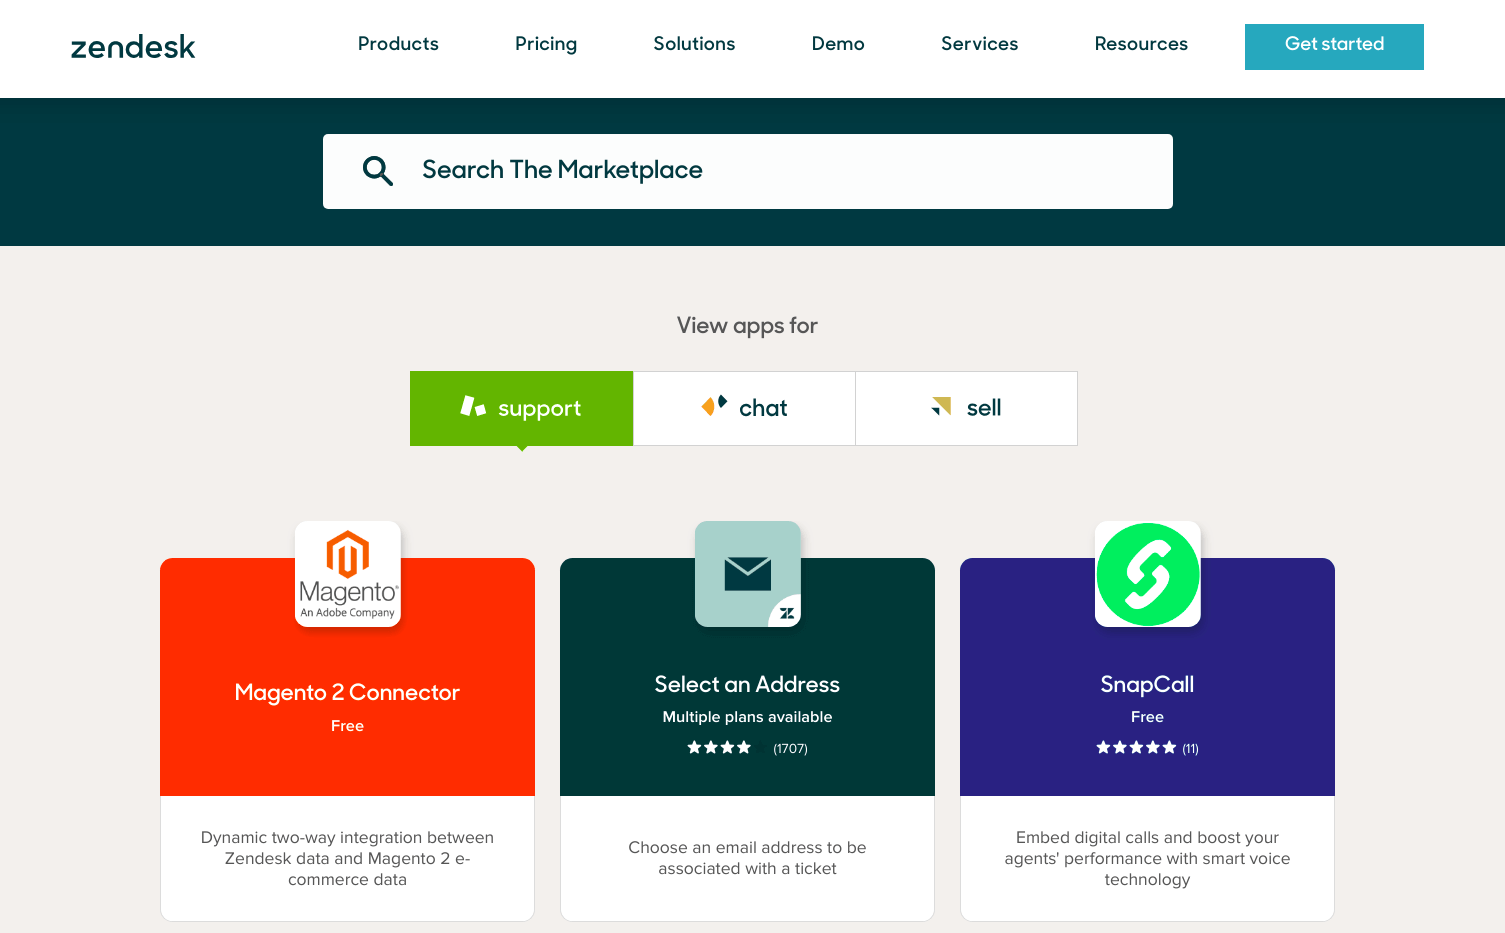 Zendesk marketplace